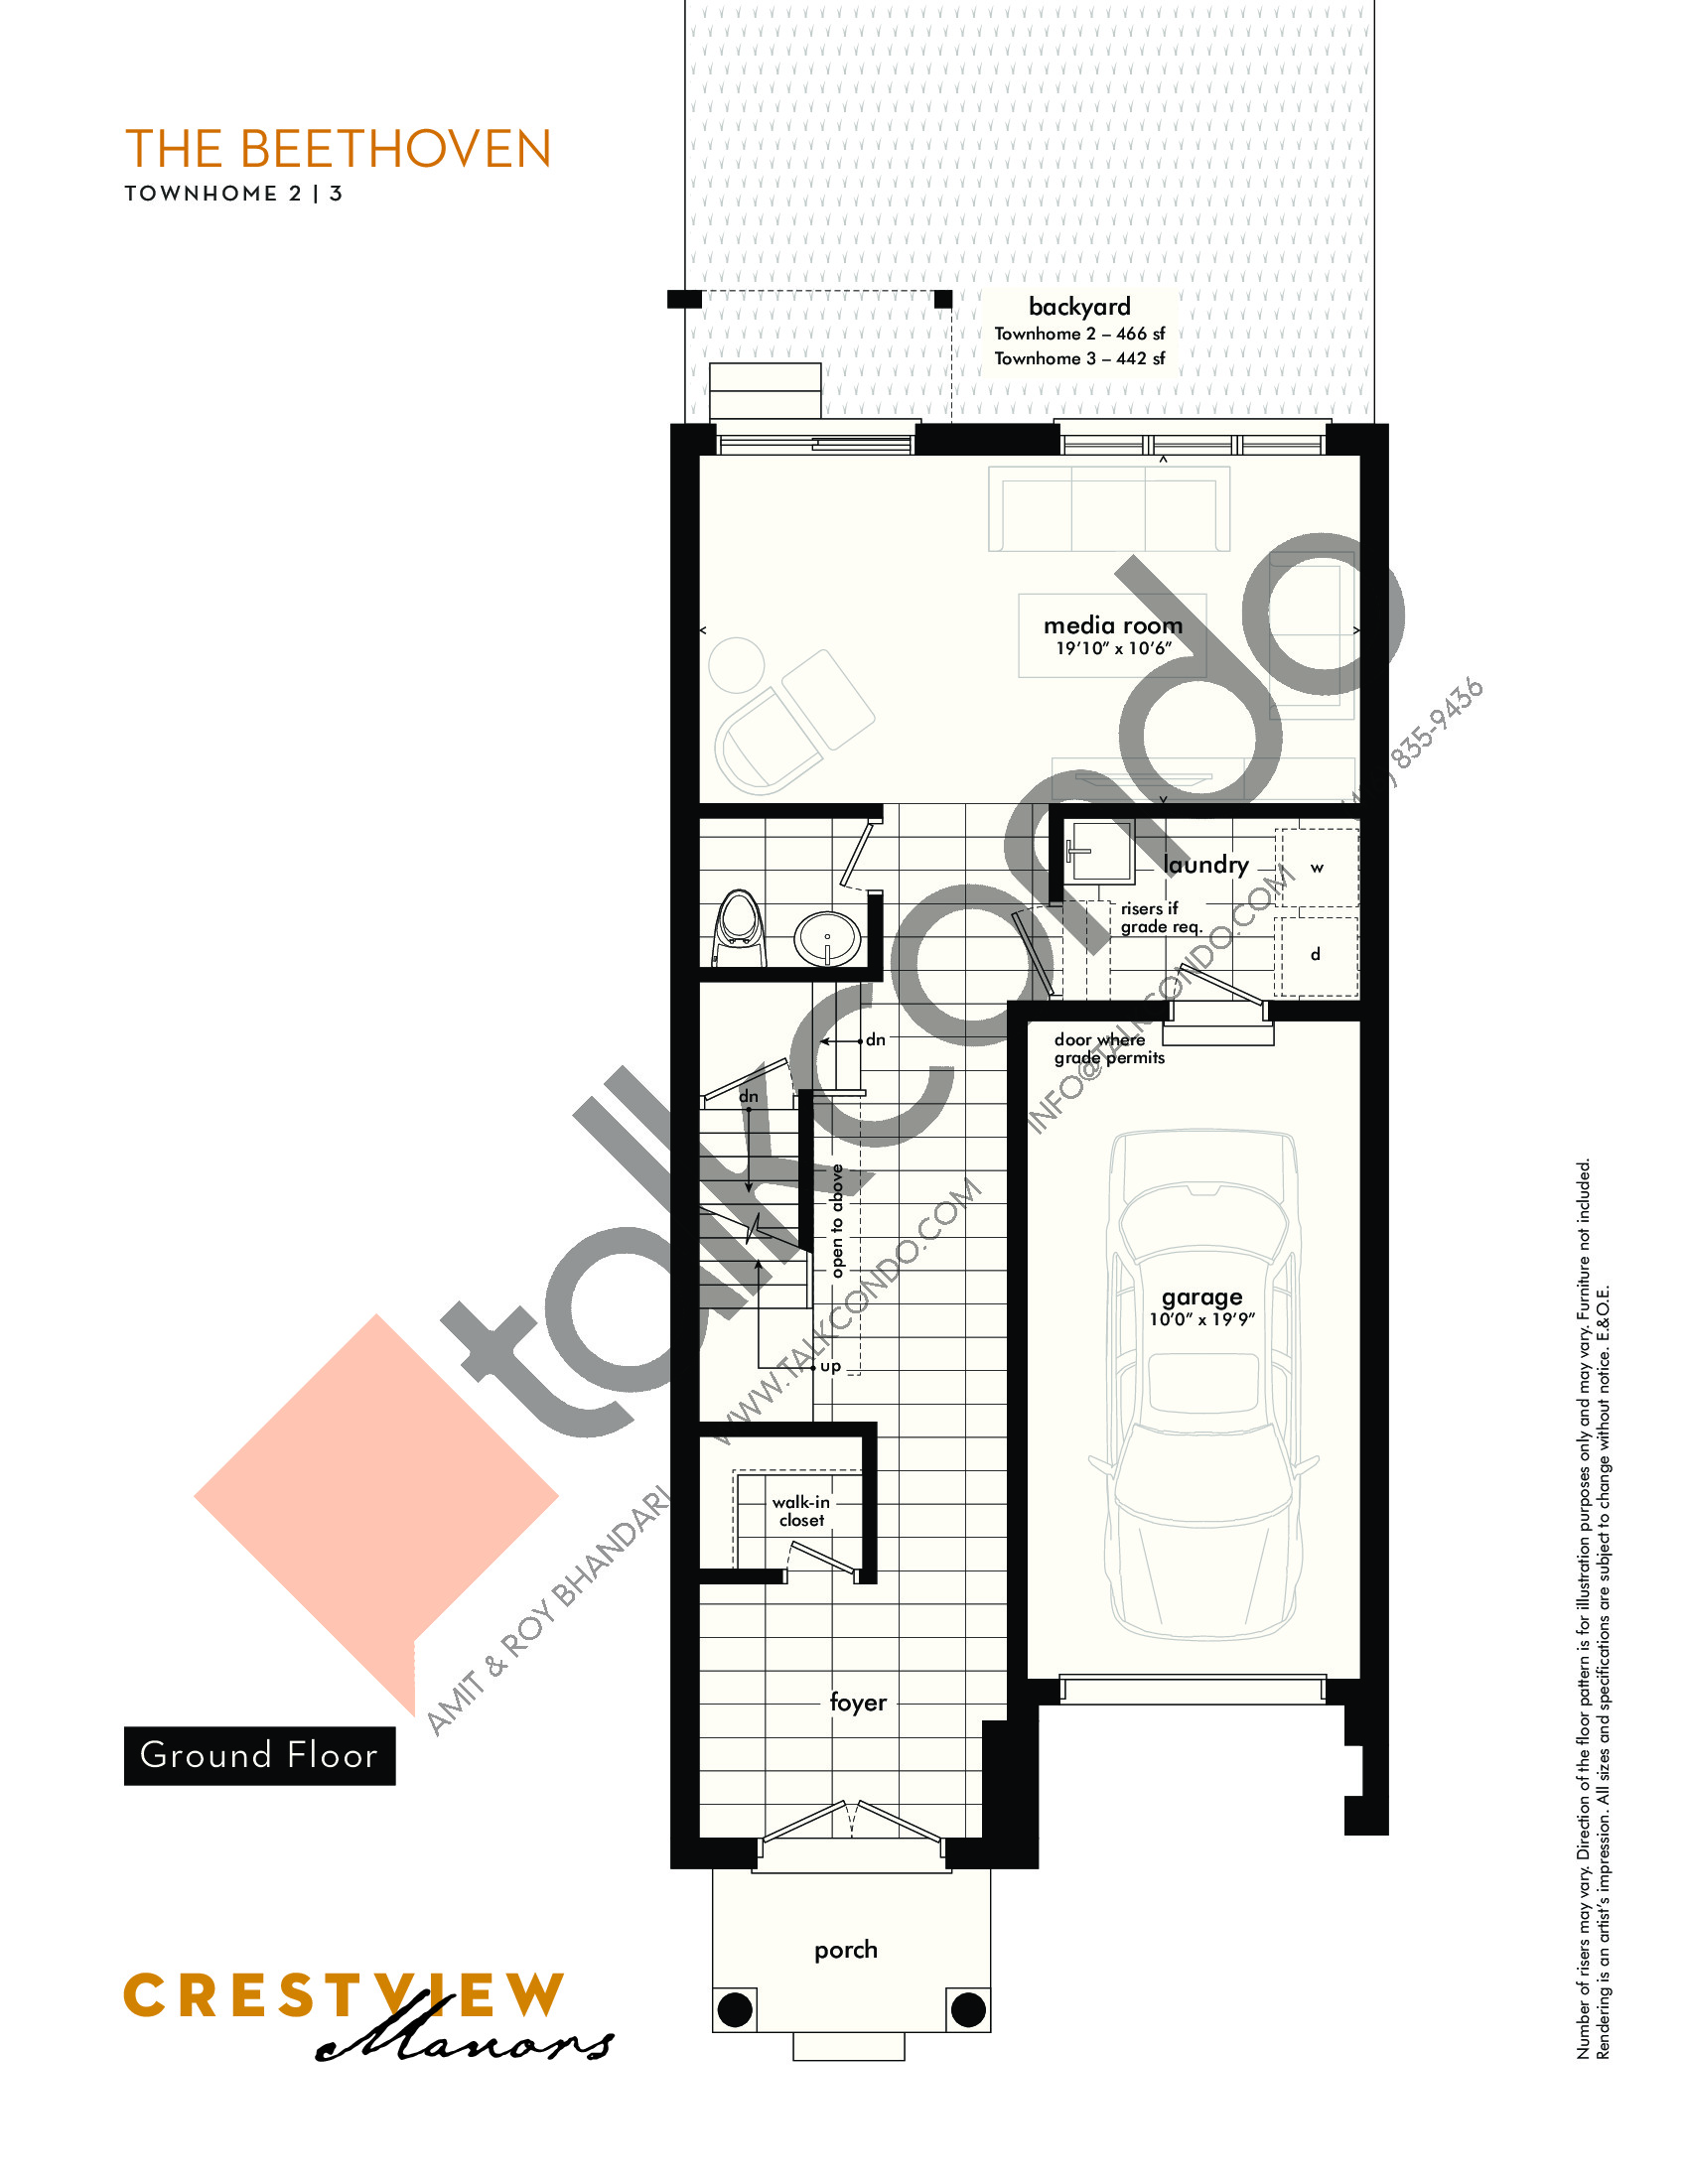 The Beethoven - Ground Floor Floor Plan at Crestview Manors - 2362 sq.ft